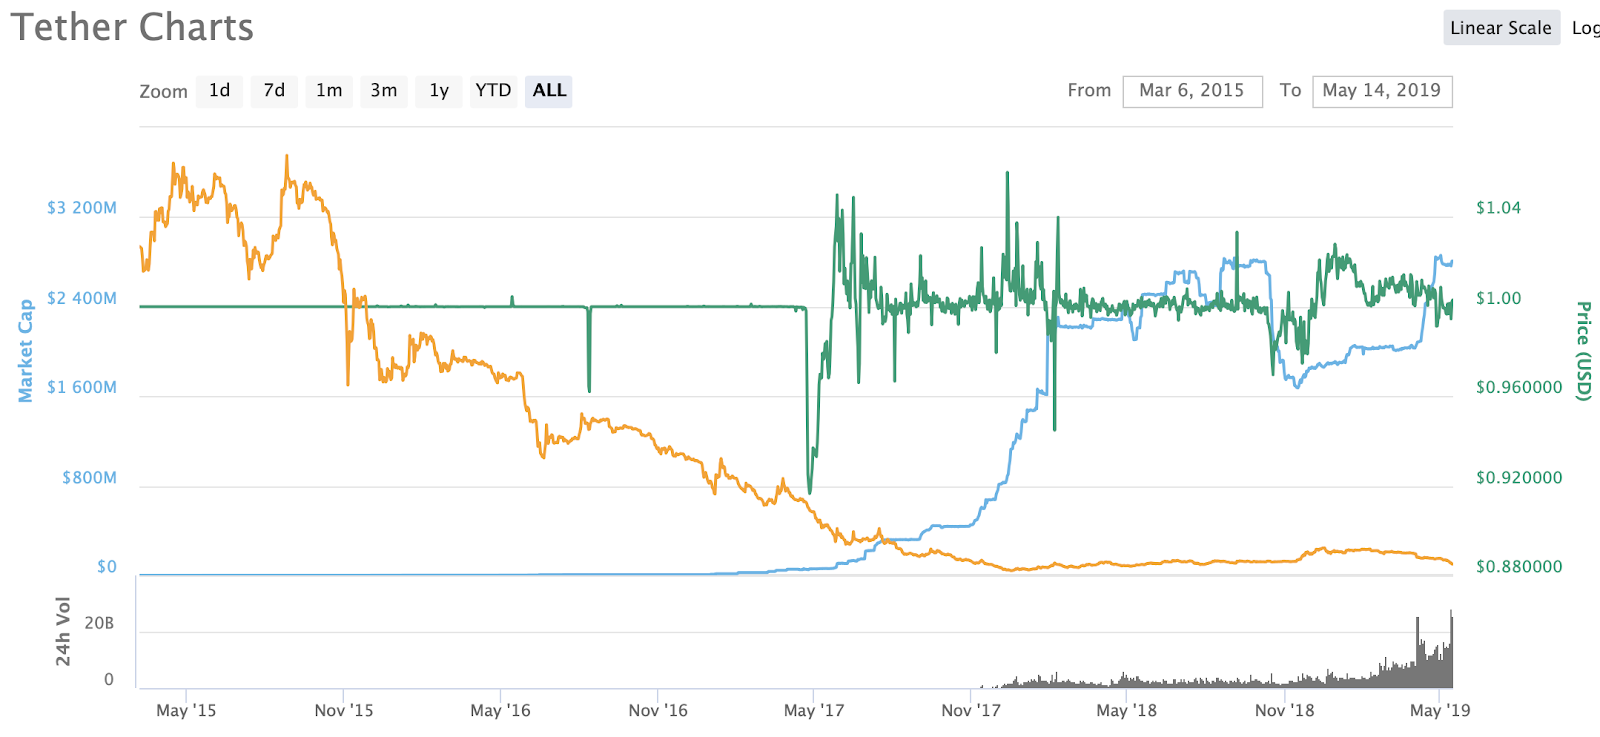 tether_charts